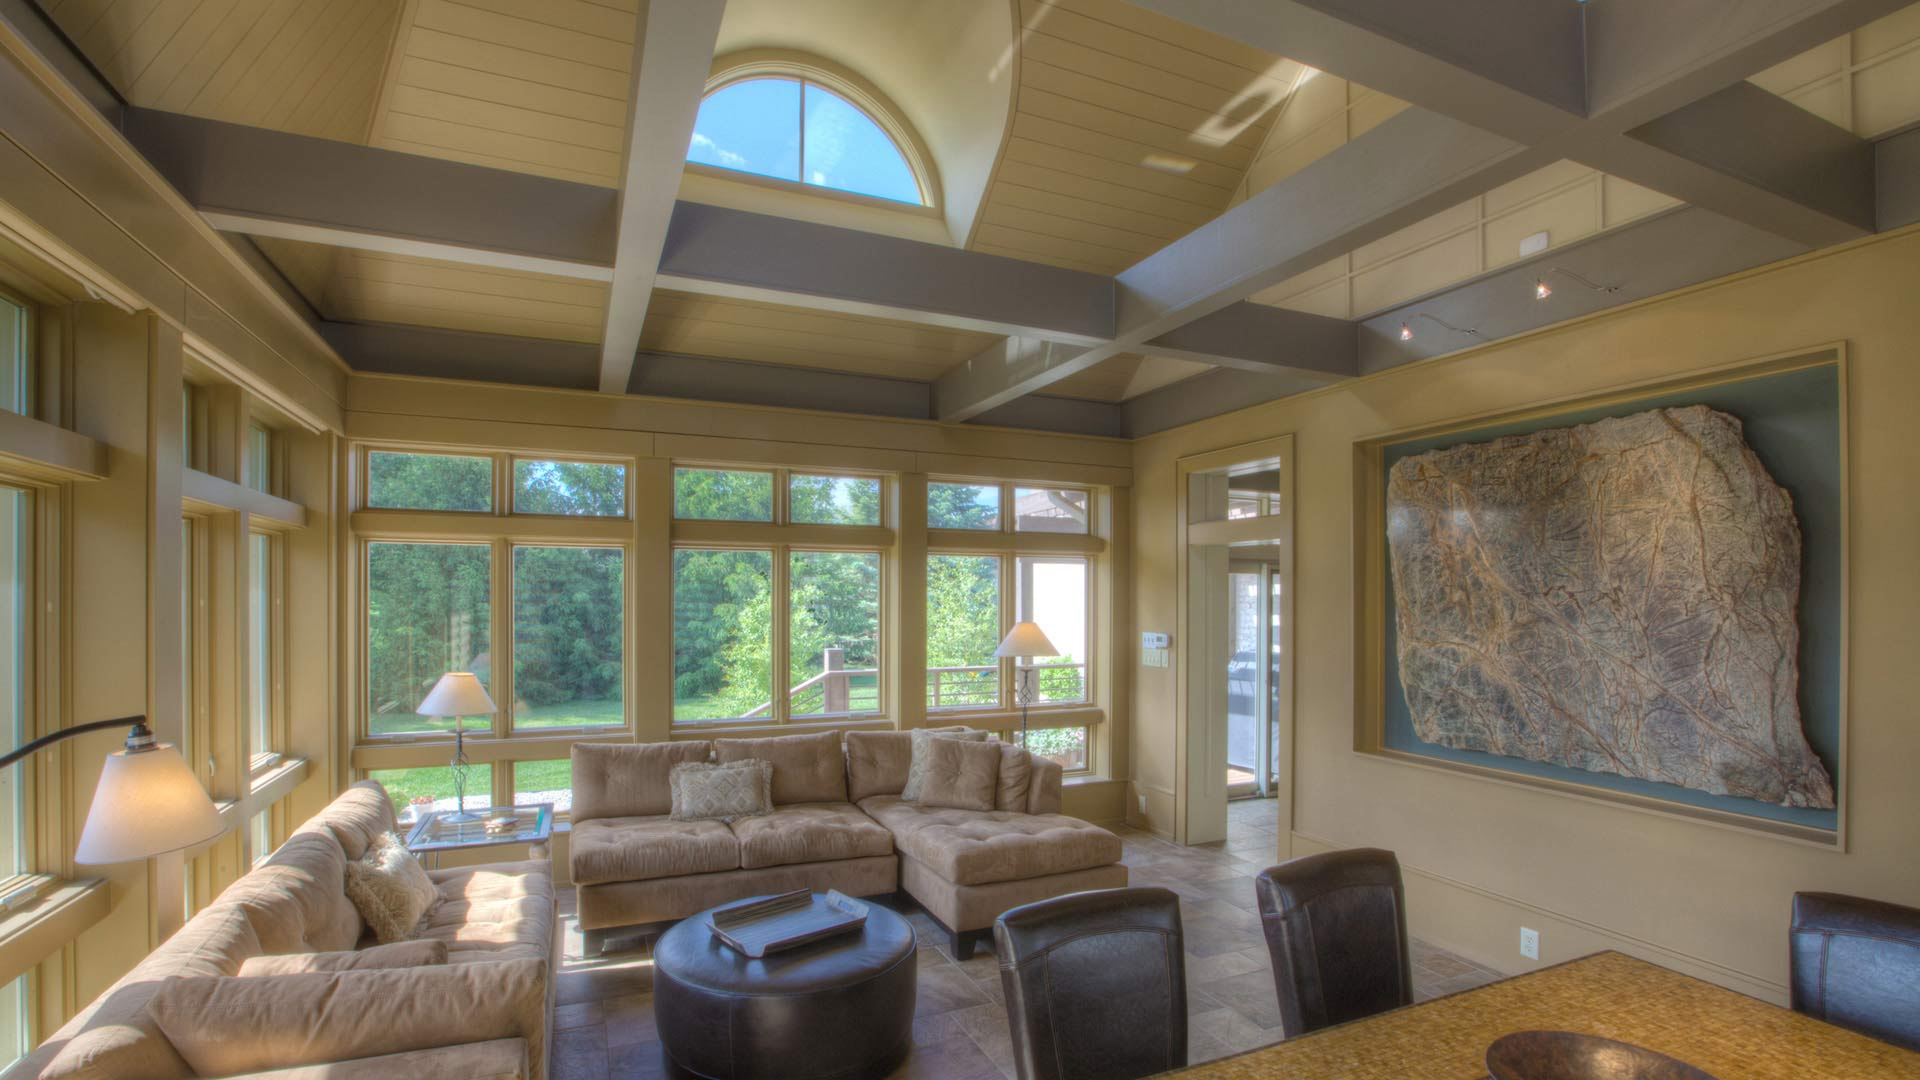 Sunroom View with exposed beams, half-round dormer, and floor to ceiling windows- Kitchen and Family Room Addition - Indianapolis, IN